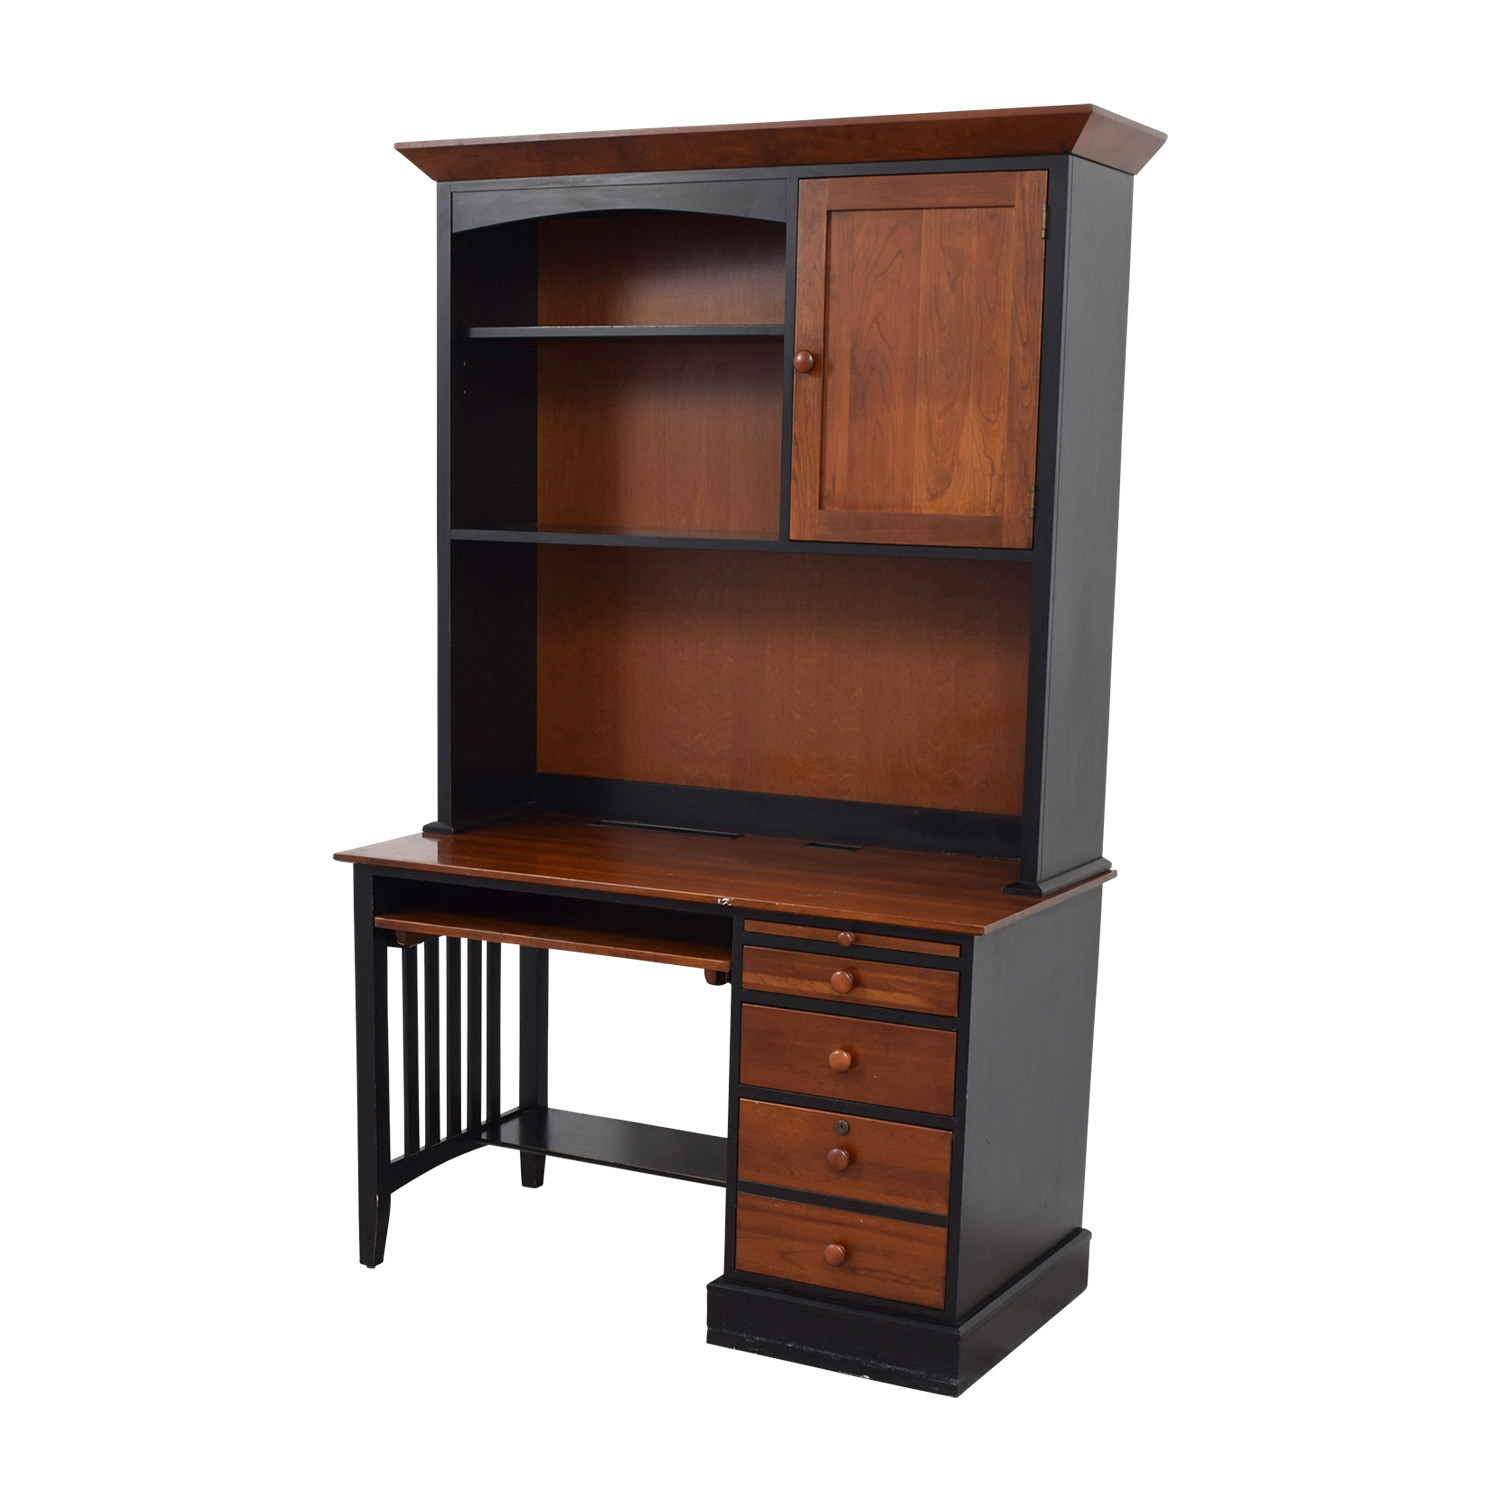 home office black desk. Shop Ethan Allen Cherry Wood \u0026 Black Desk With Hutch Home Office Desks R